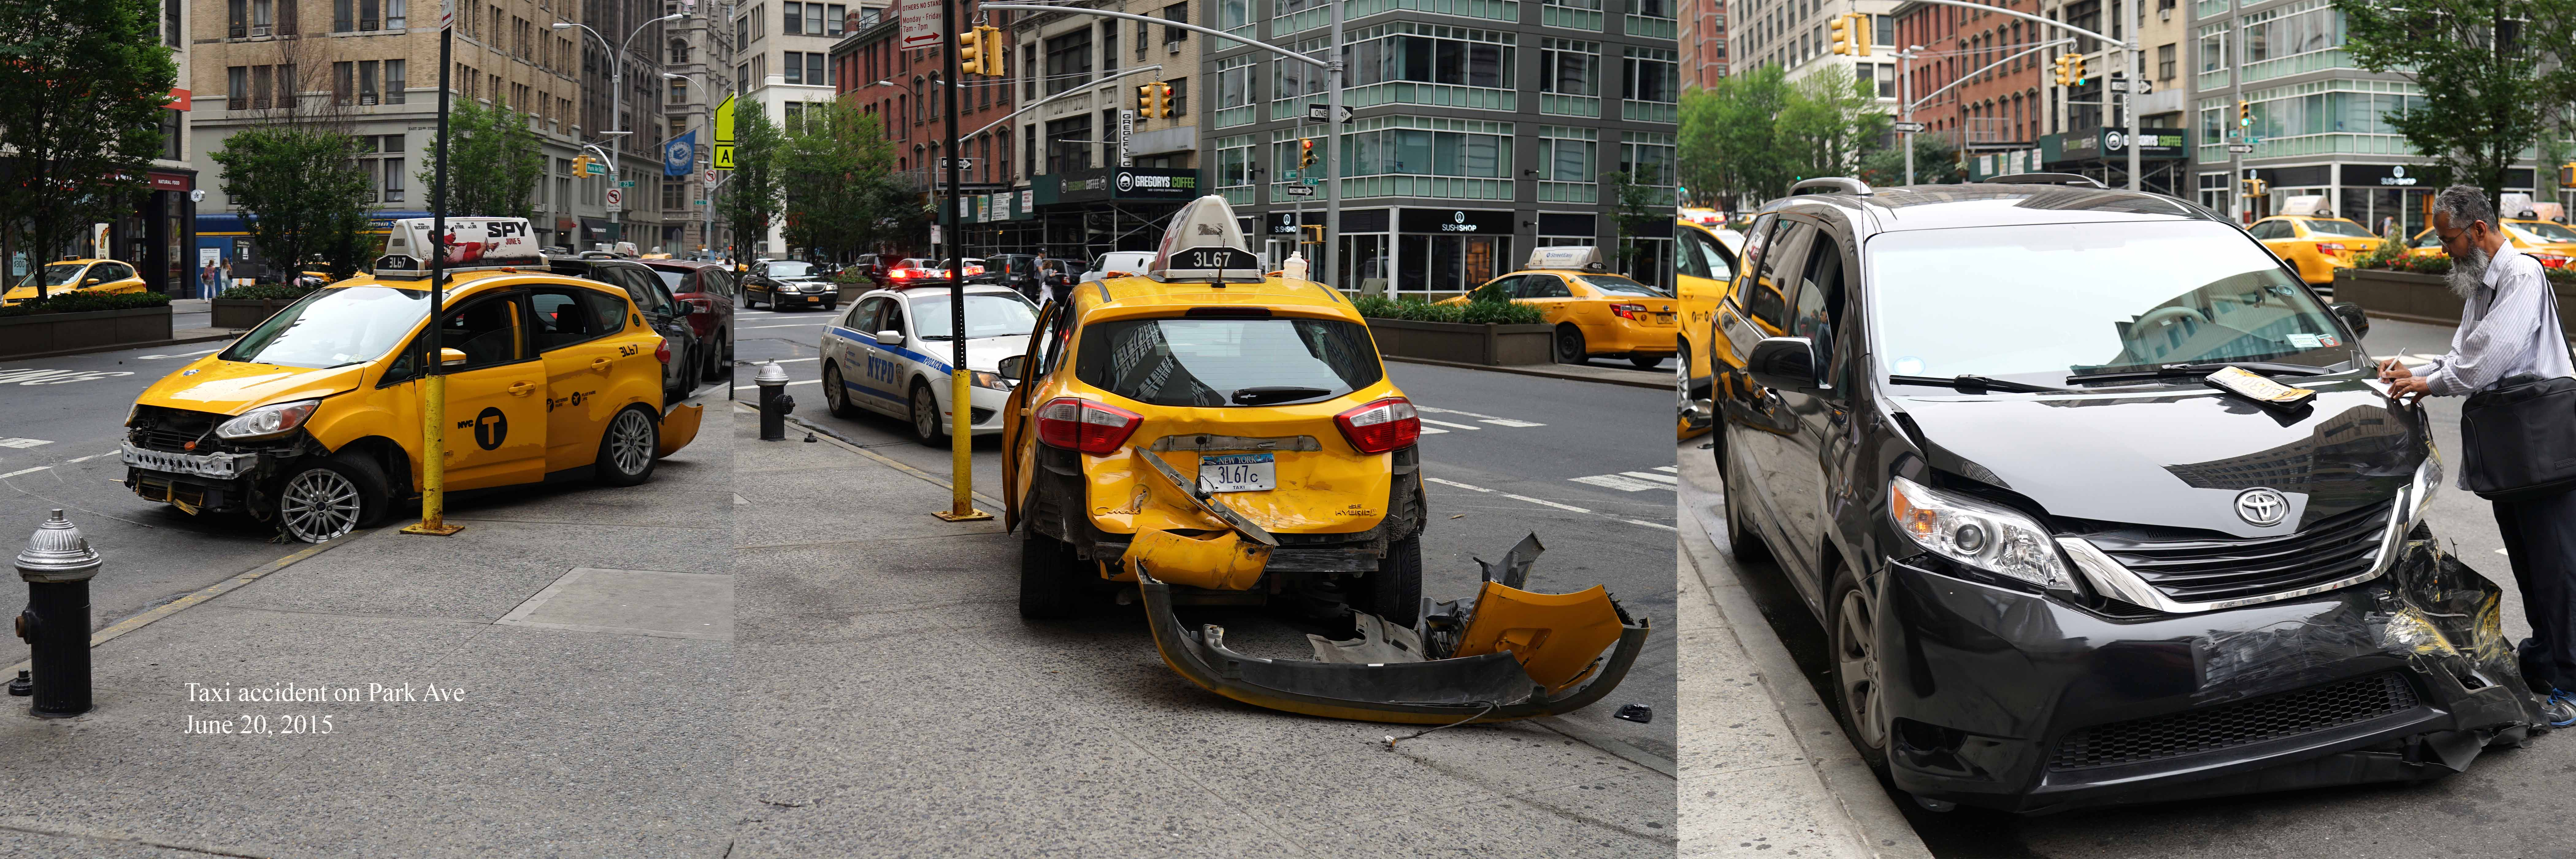 Taxi accident on Park Ave 6-20-2015